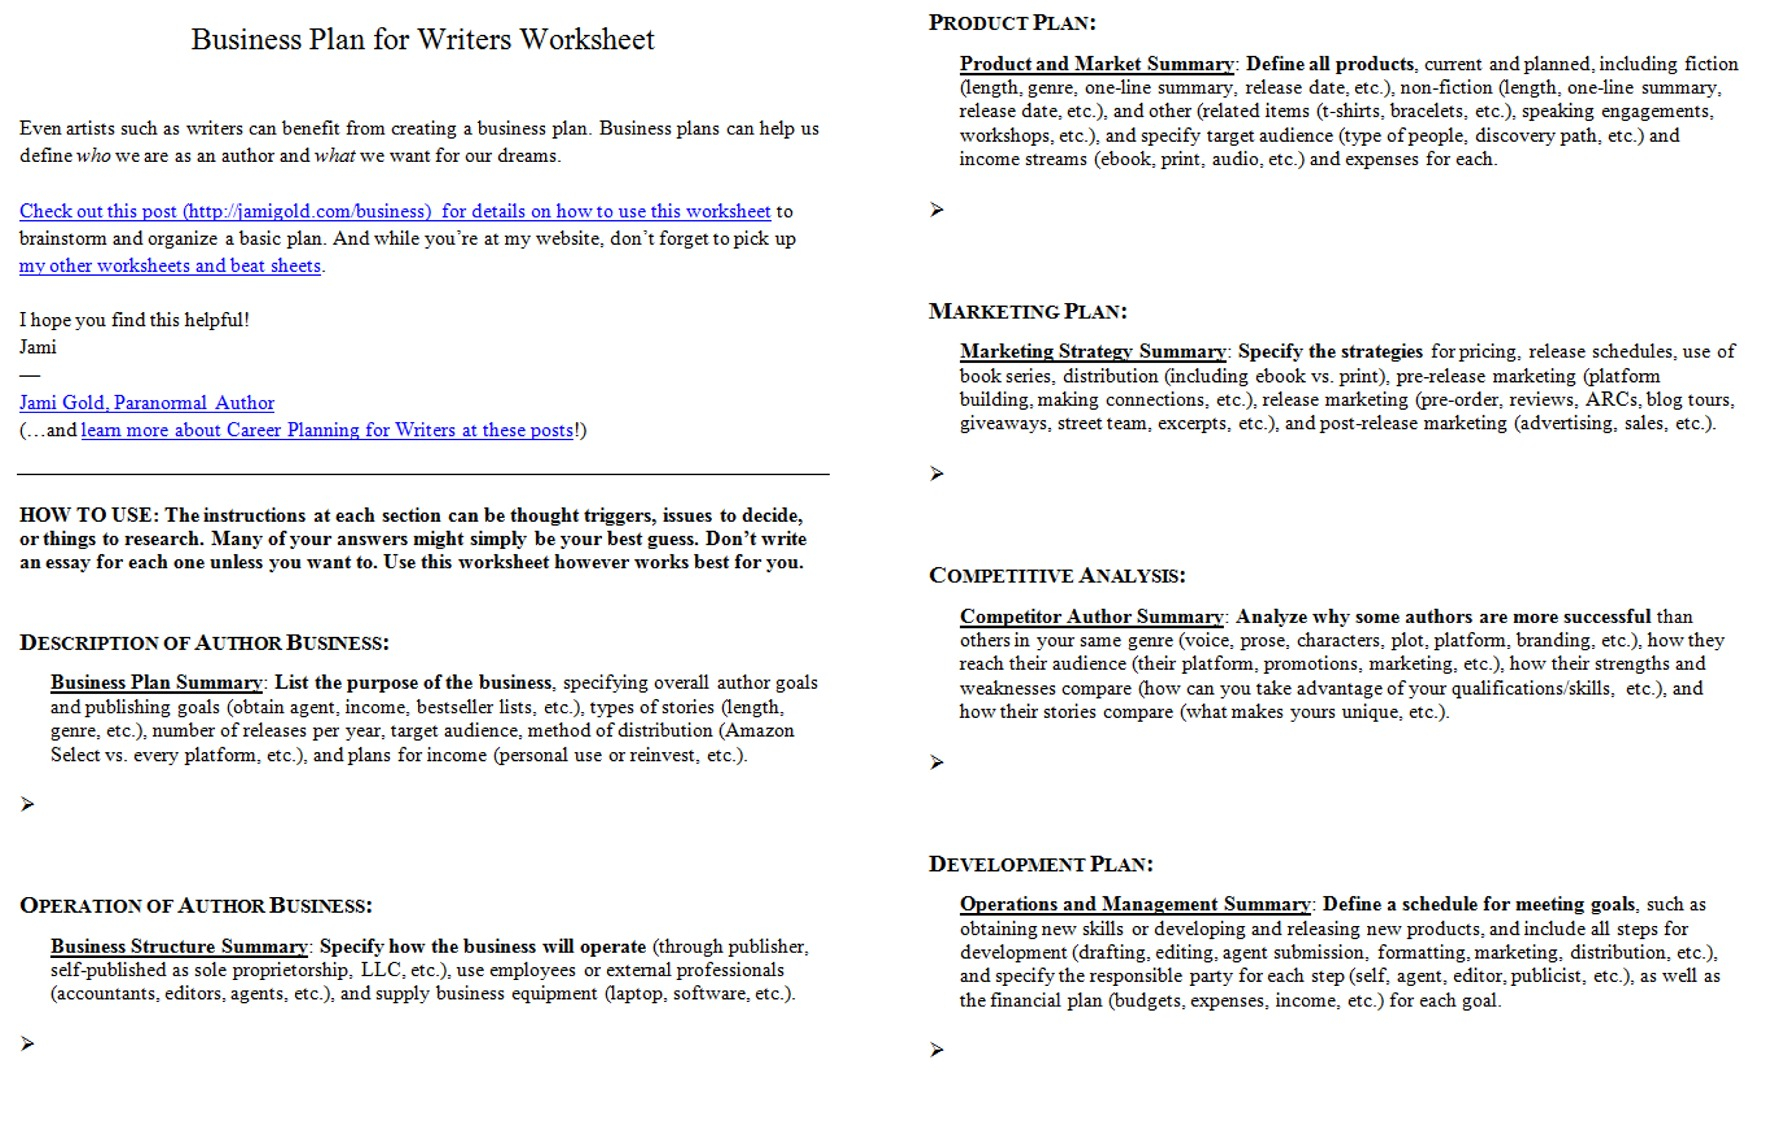 Weirdmailus  Ravishing Worksheets For Writers  Jami Gold Paranormal Author With Fair Screen Shot Of Both Pages Of The Business Plan For Writers Worksheet With Archaic Eftps Business Phone Worksheet Also Was Were Worksheets In Addition Aa  Step Worksheets And Roman Numerals Worksheet For Grade  As Well As American Revolution Worksheet Additionally Social Skills Training For Children Worksheets From Jamigoldcom With Weirdmailus  Fair Worksheets For Writers  Jami Gold Paranormal Author With Archaic Screen Shot Of Both Pages Of The Business Plan For Writers Worksheet And Ravishing Eftps Business Phone Worksheet Also Was Were Worksheets In Addition Aa  Step Worksheets From Jamigoldcom